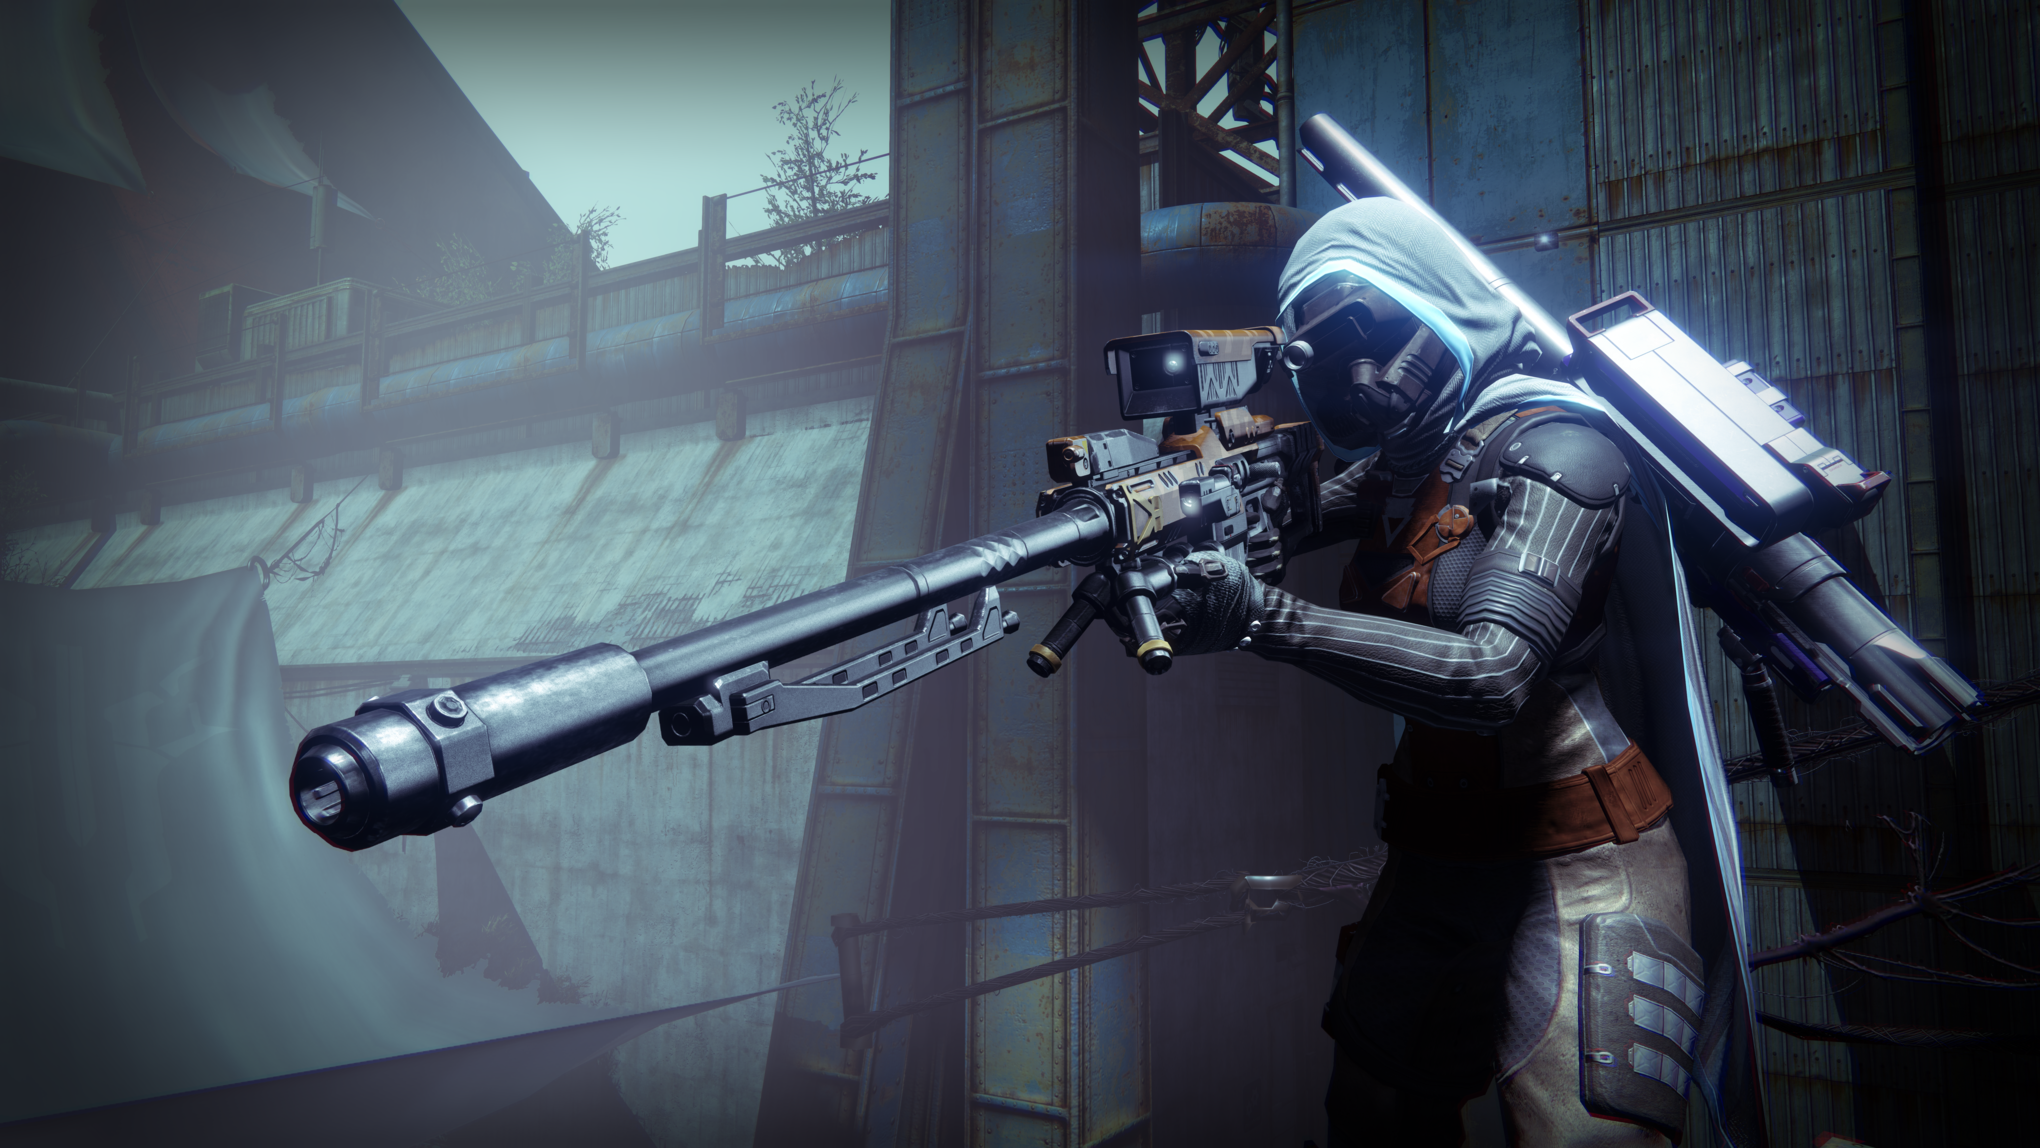 Destiny's worst bit is one of our favorite actors, and we're worried